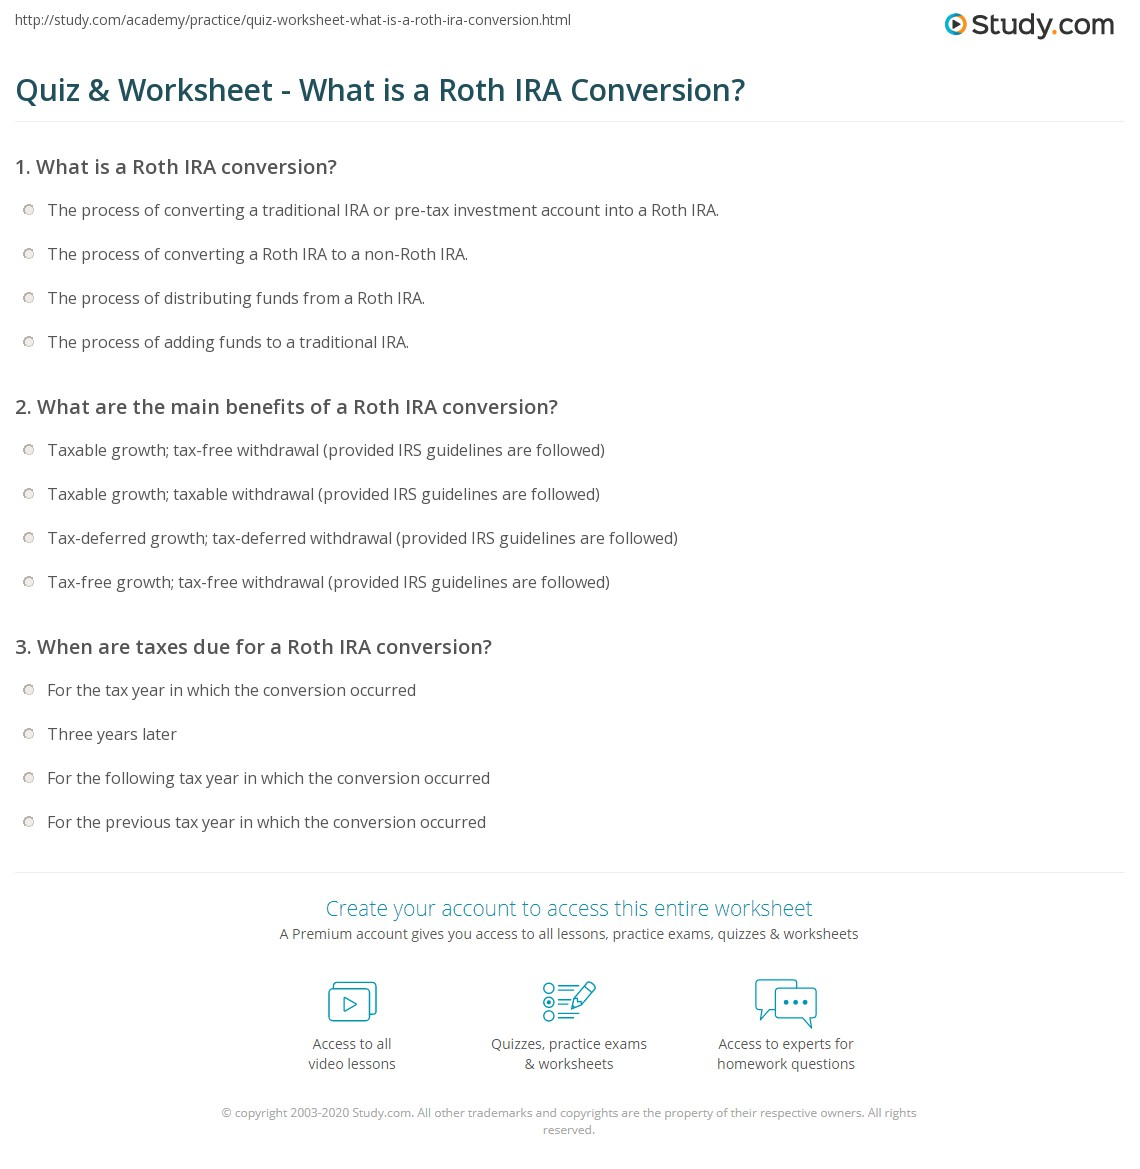 quiz & worksheet - what is a roth ira conversion? | study